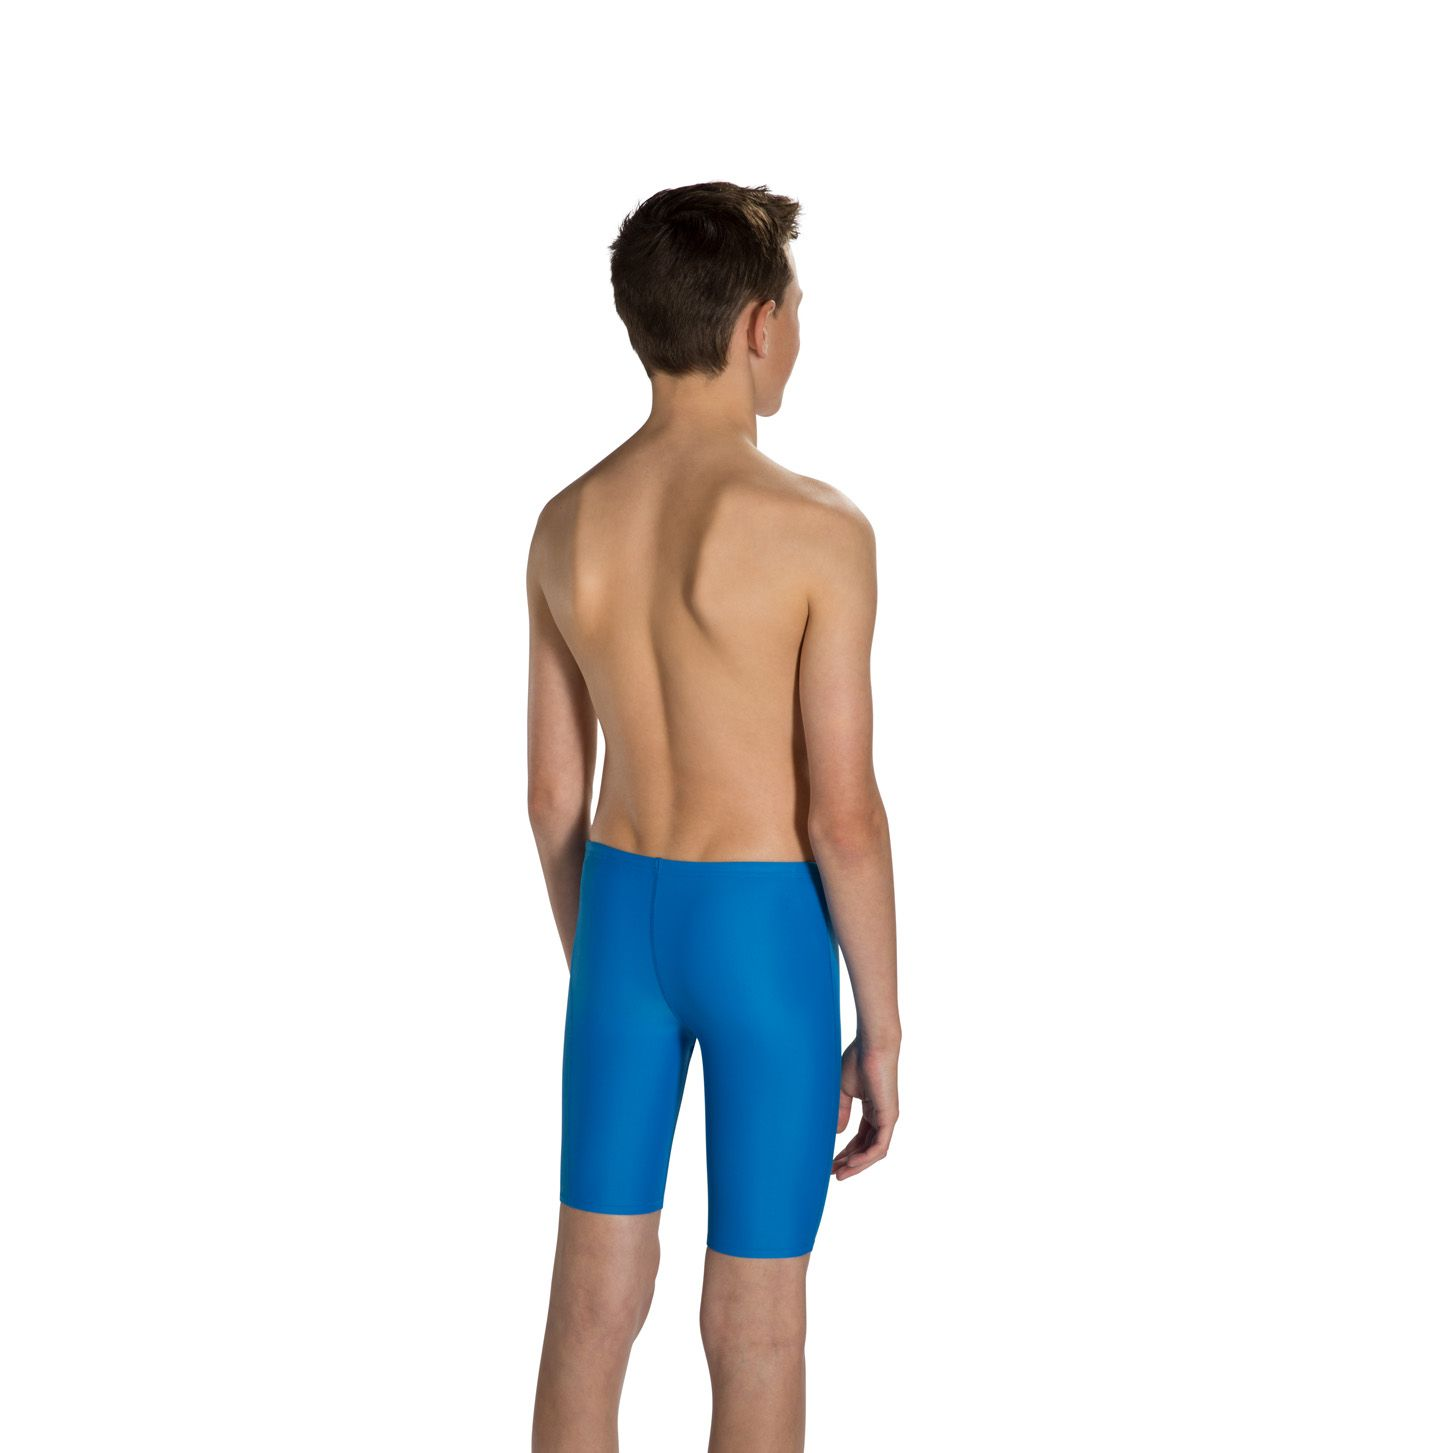 Boys jammers - tracker blockers jammers reviews